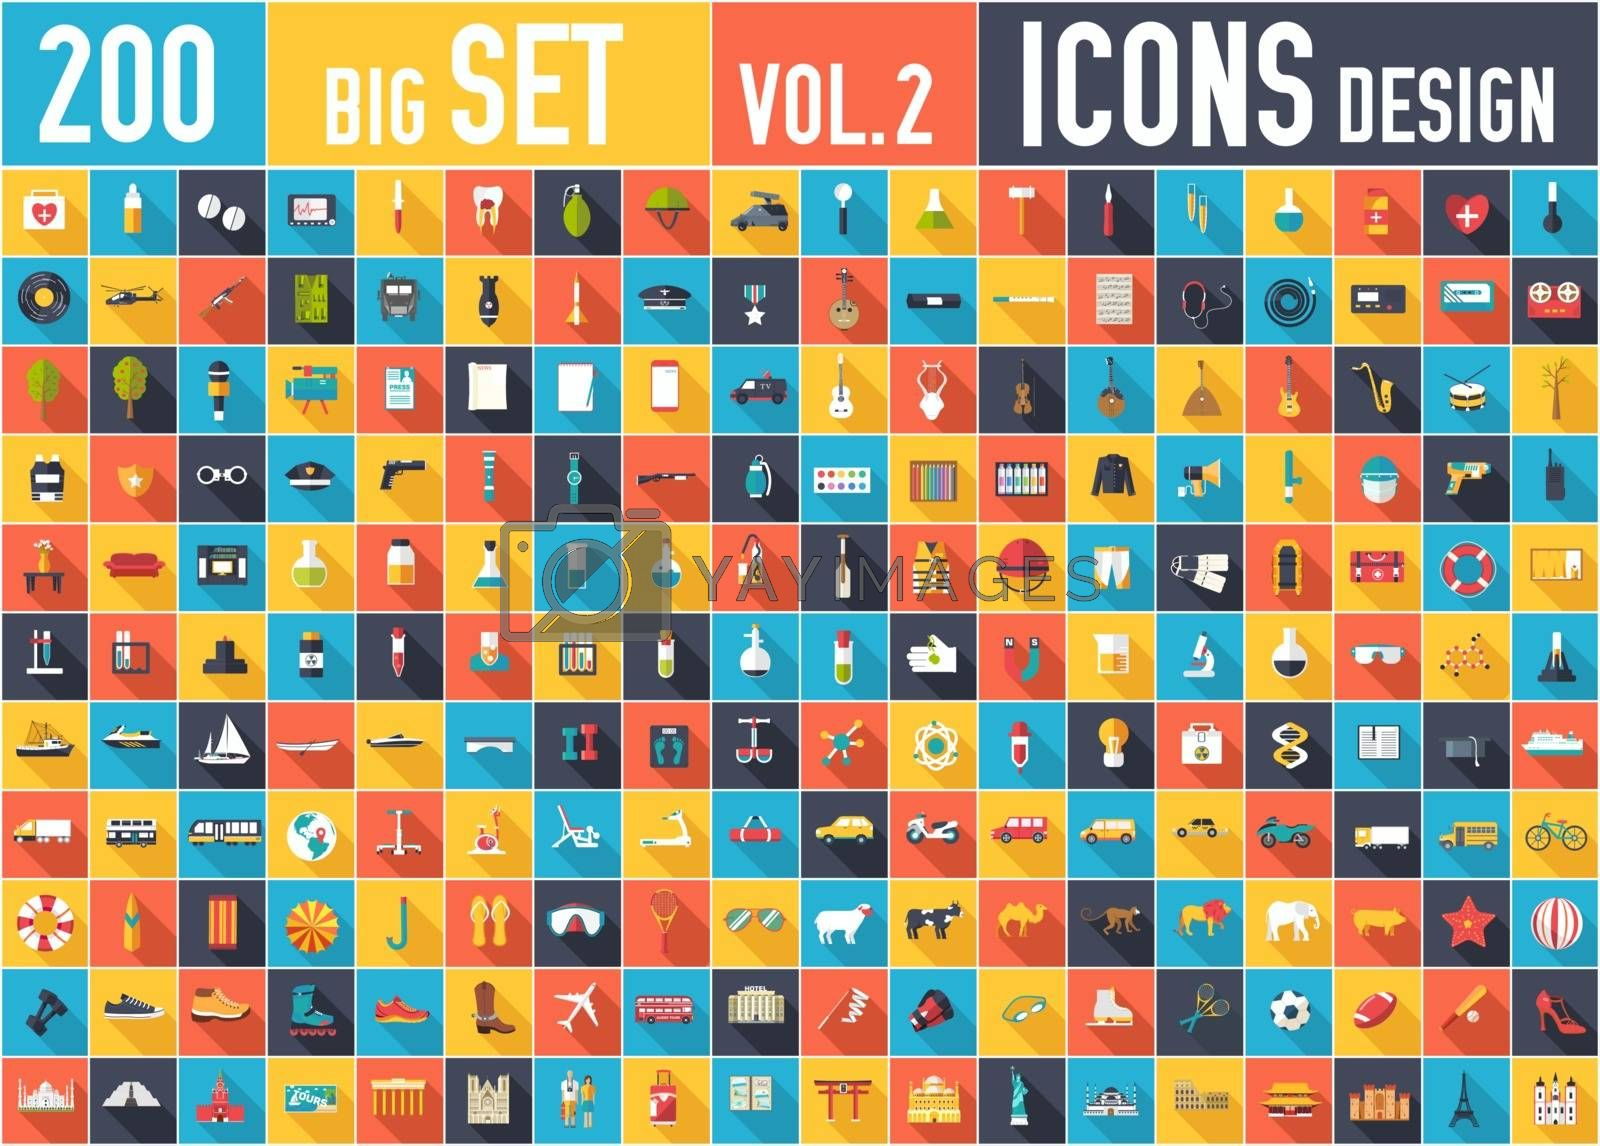 Vol. 2 Flat big collection set icons of medical, army, war, shoe, nature, news, draw, police, rafting, room, science, boat sport gym car animal summer tool country For infographic design